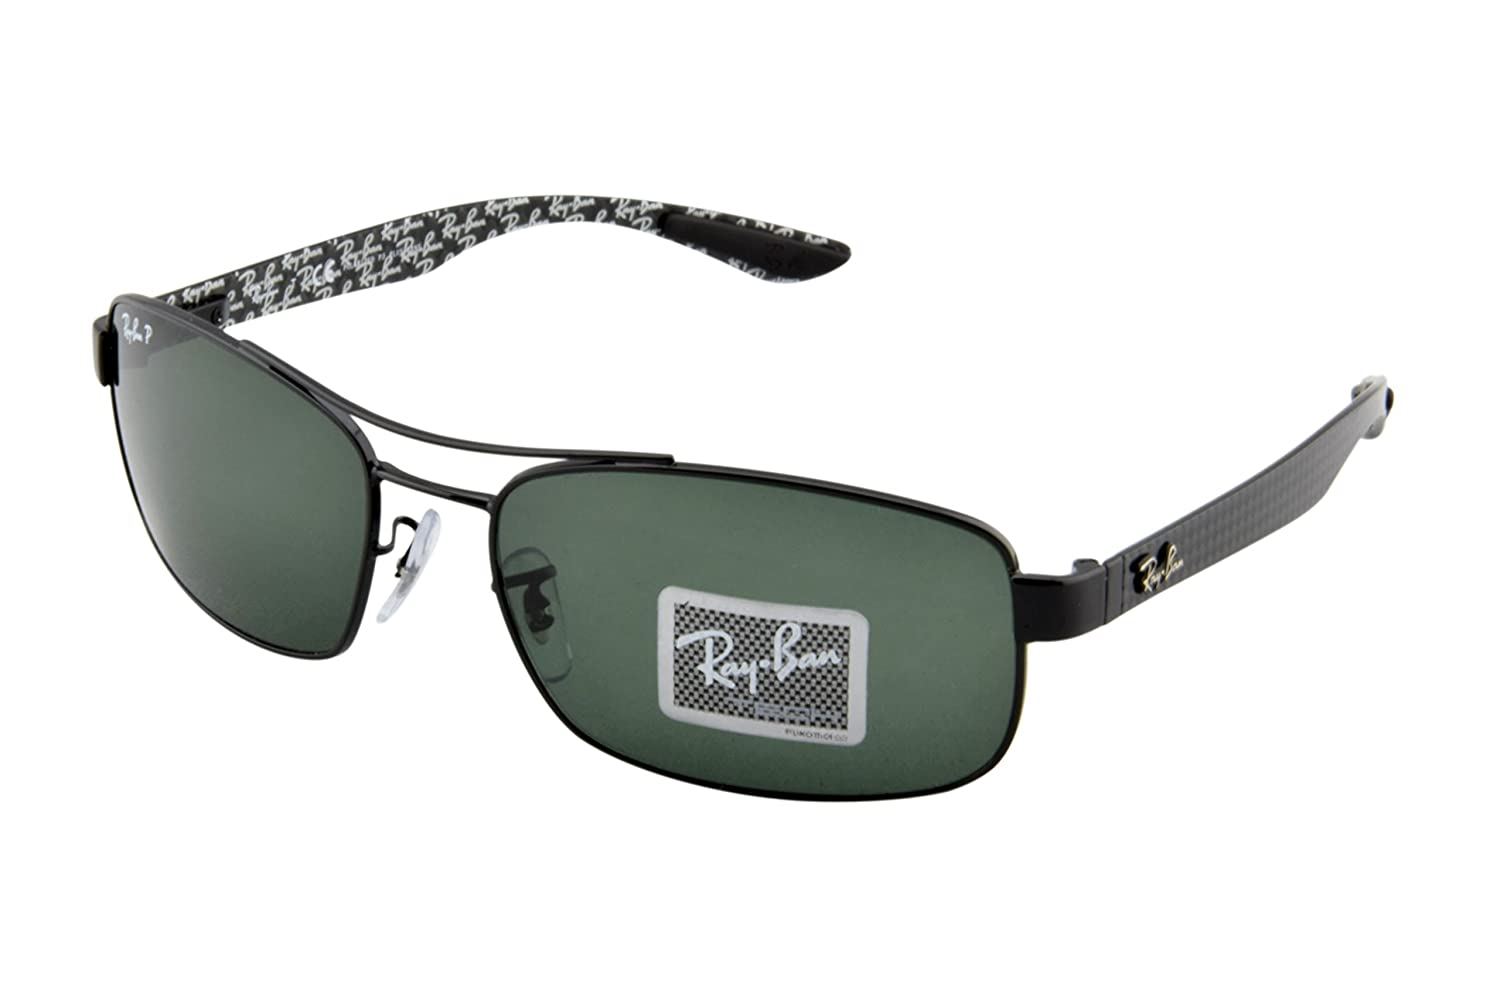 Ray-Ban Mens Carbon Fibre Sunglasses (RB8316 62) Metal